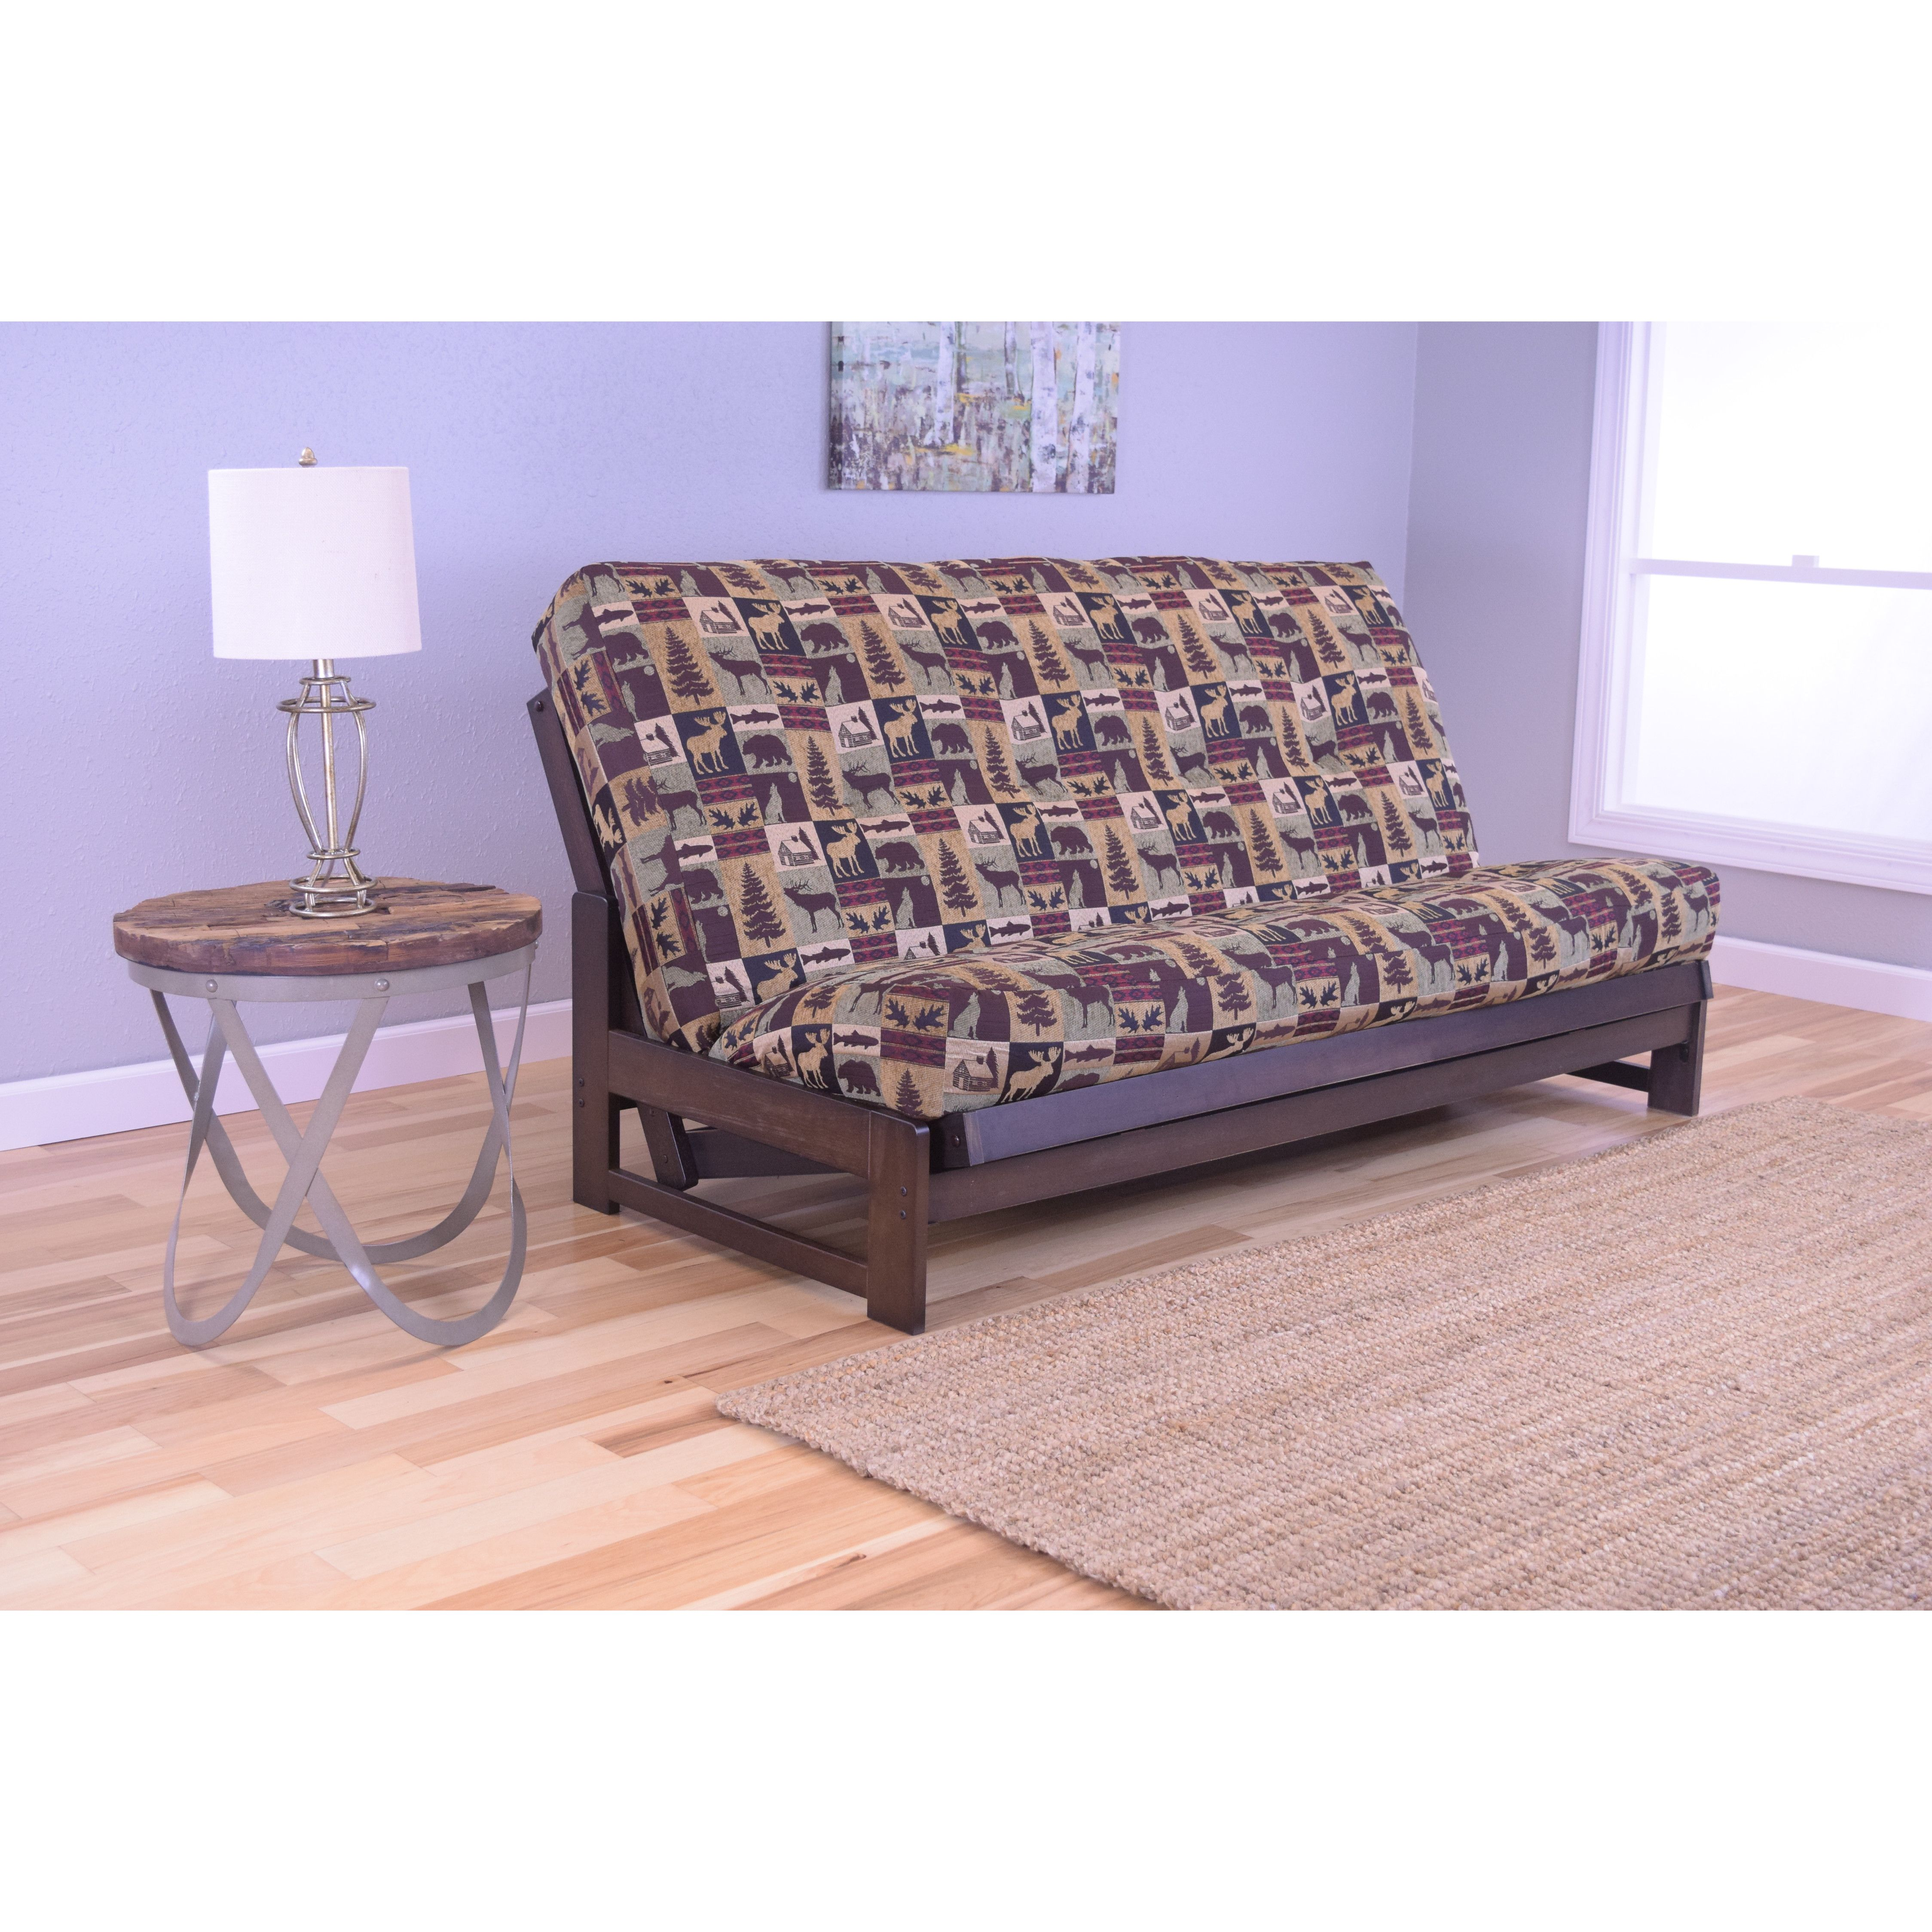 You 39 Ll Love The Aspen Futon And Mattress At Wayfair Great Deals On All Furniture Products With Free Shipping On Mos Futon Frame Futon Mattress Furniture